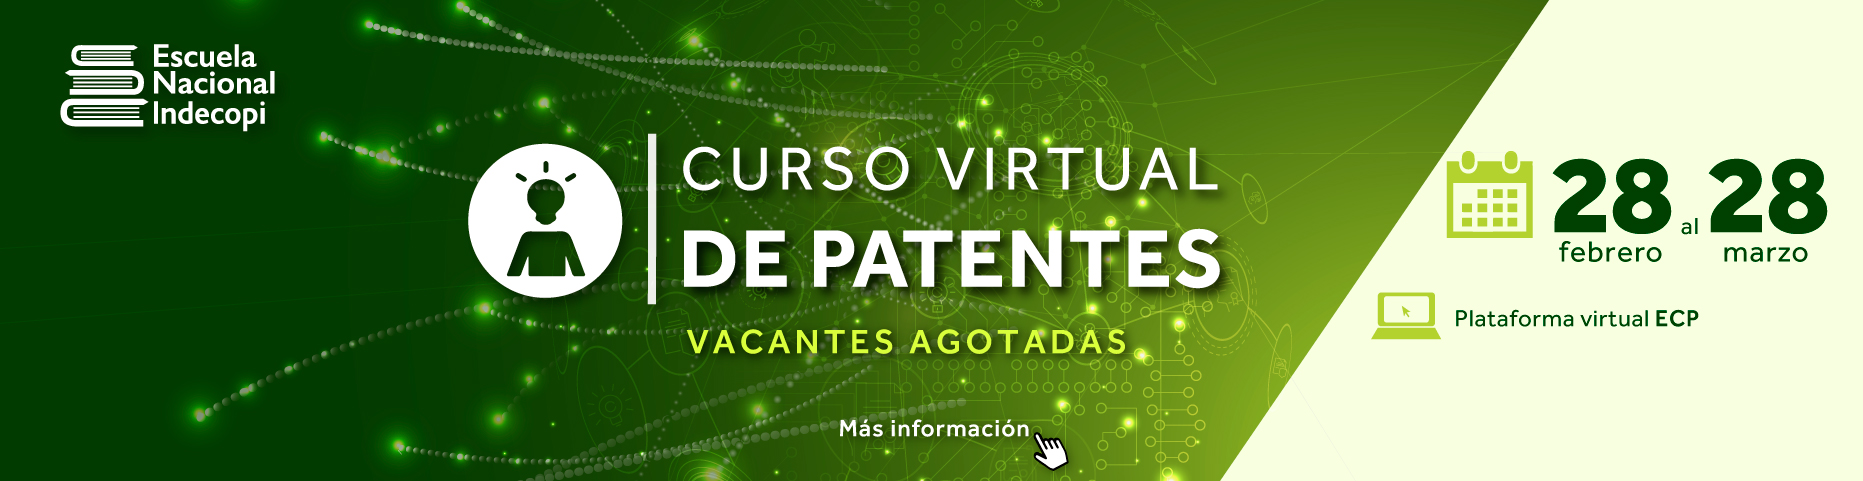 Curso virtual de Patentes 2020